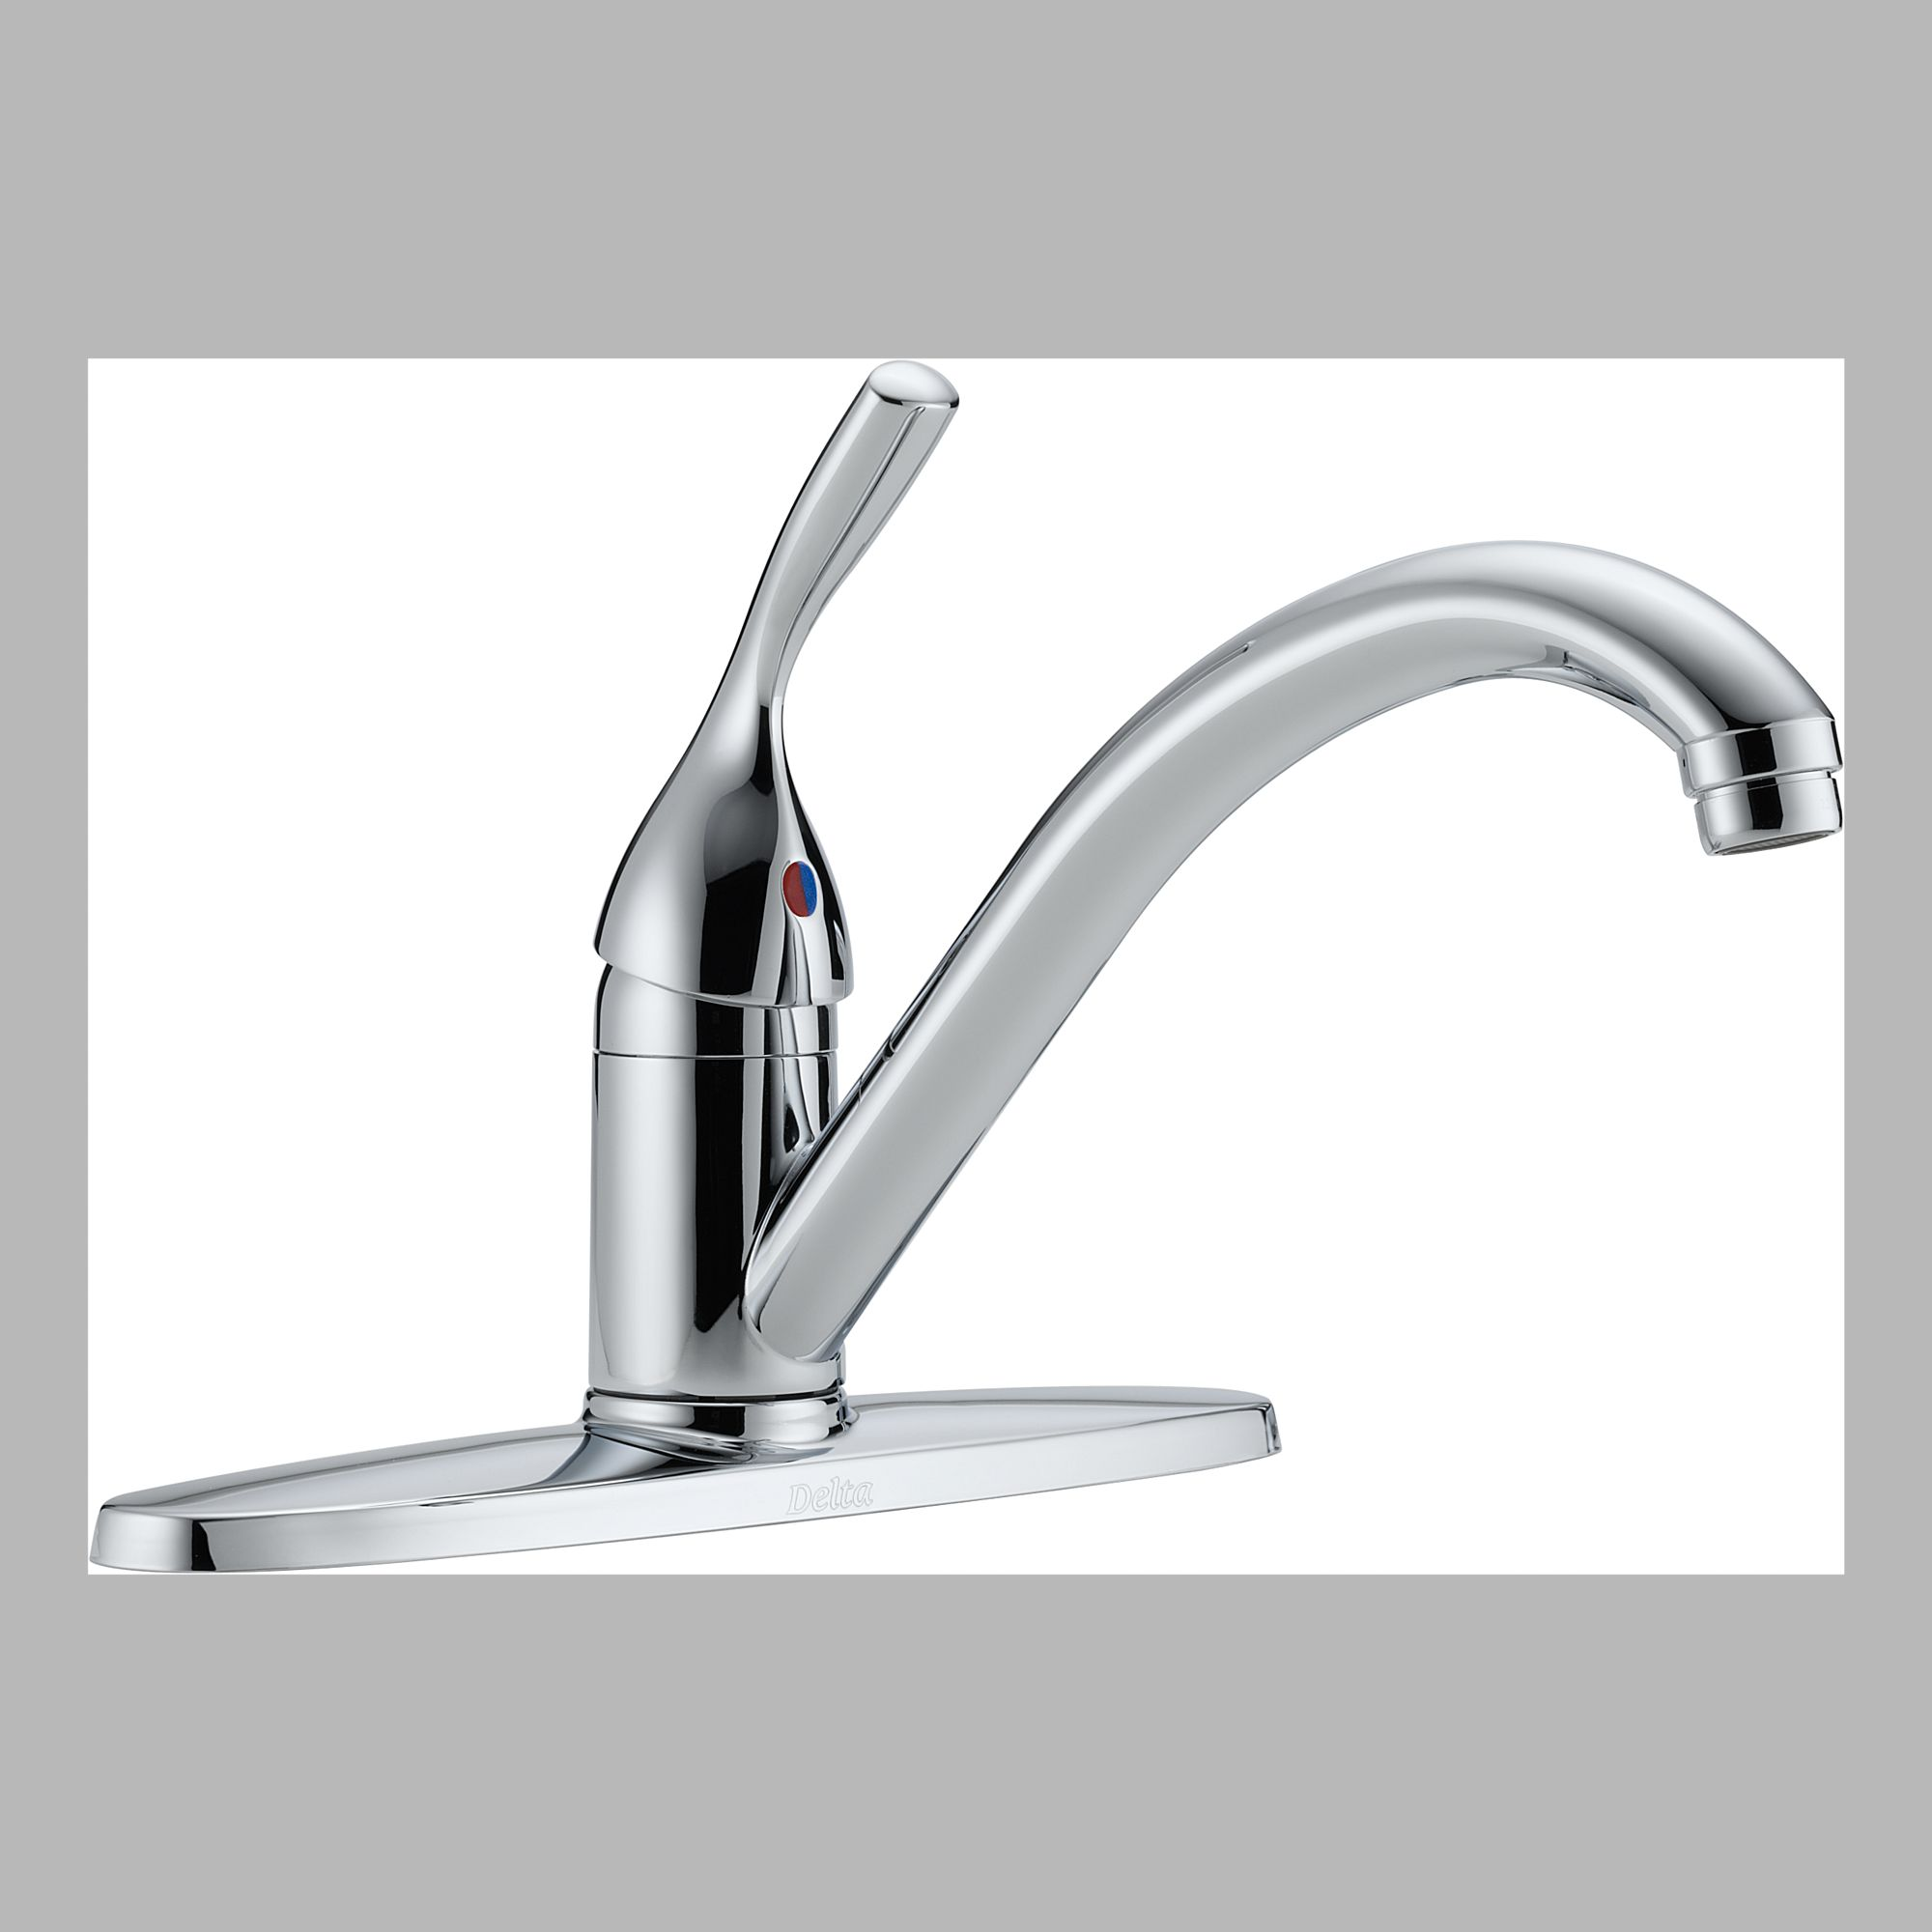 of modern delta handle affordable picture faucet single home faucets photos image decor kitchen